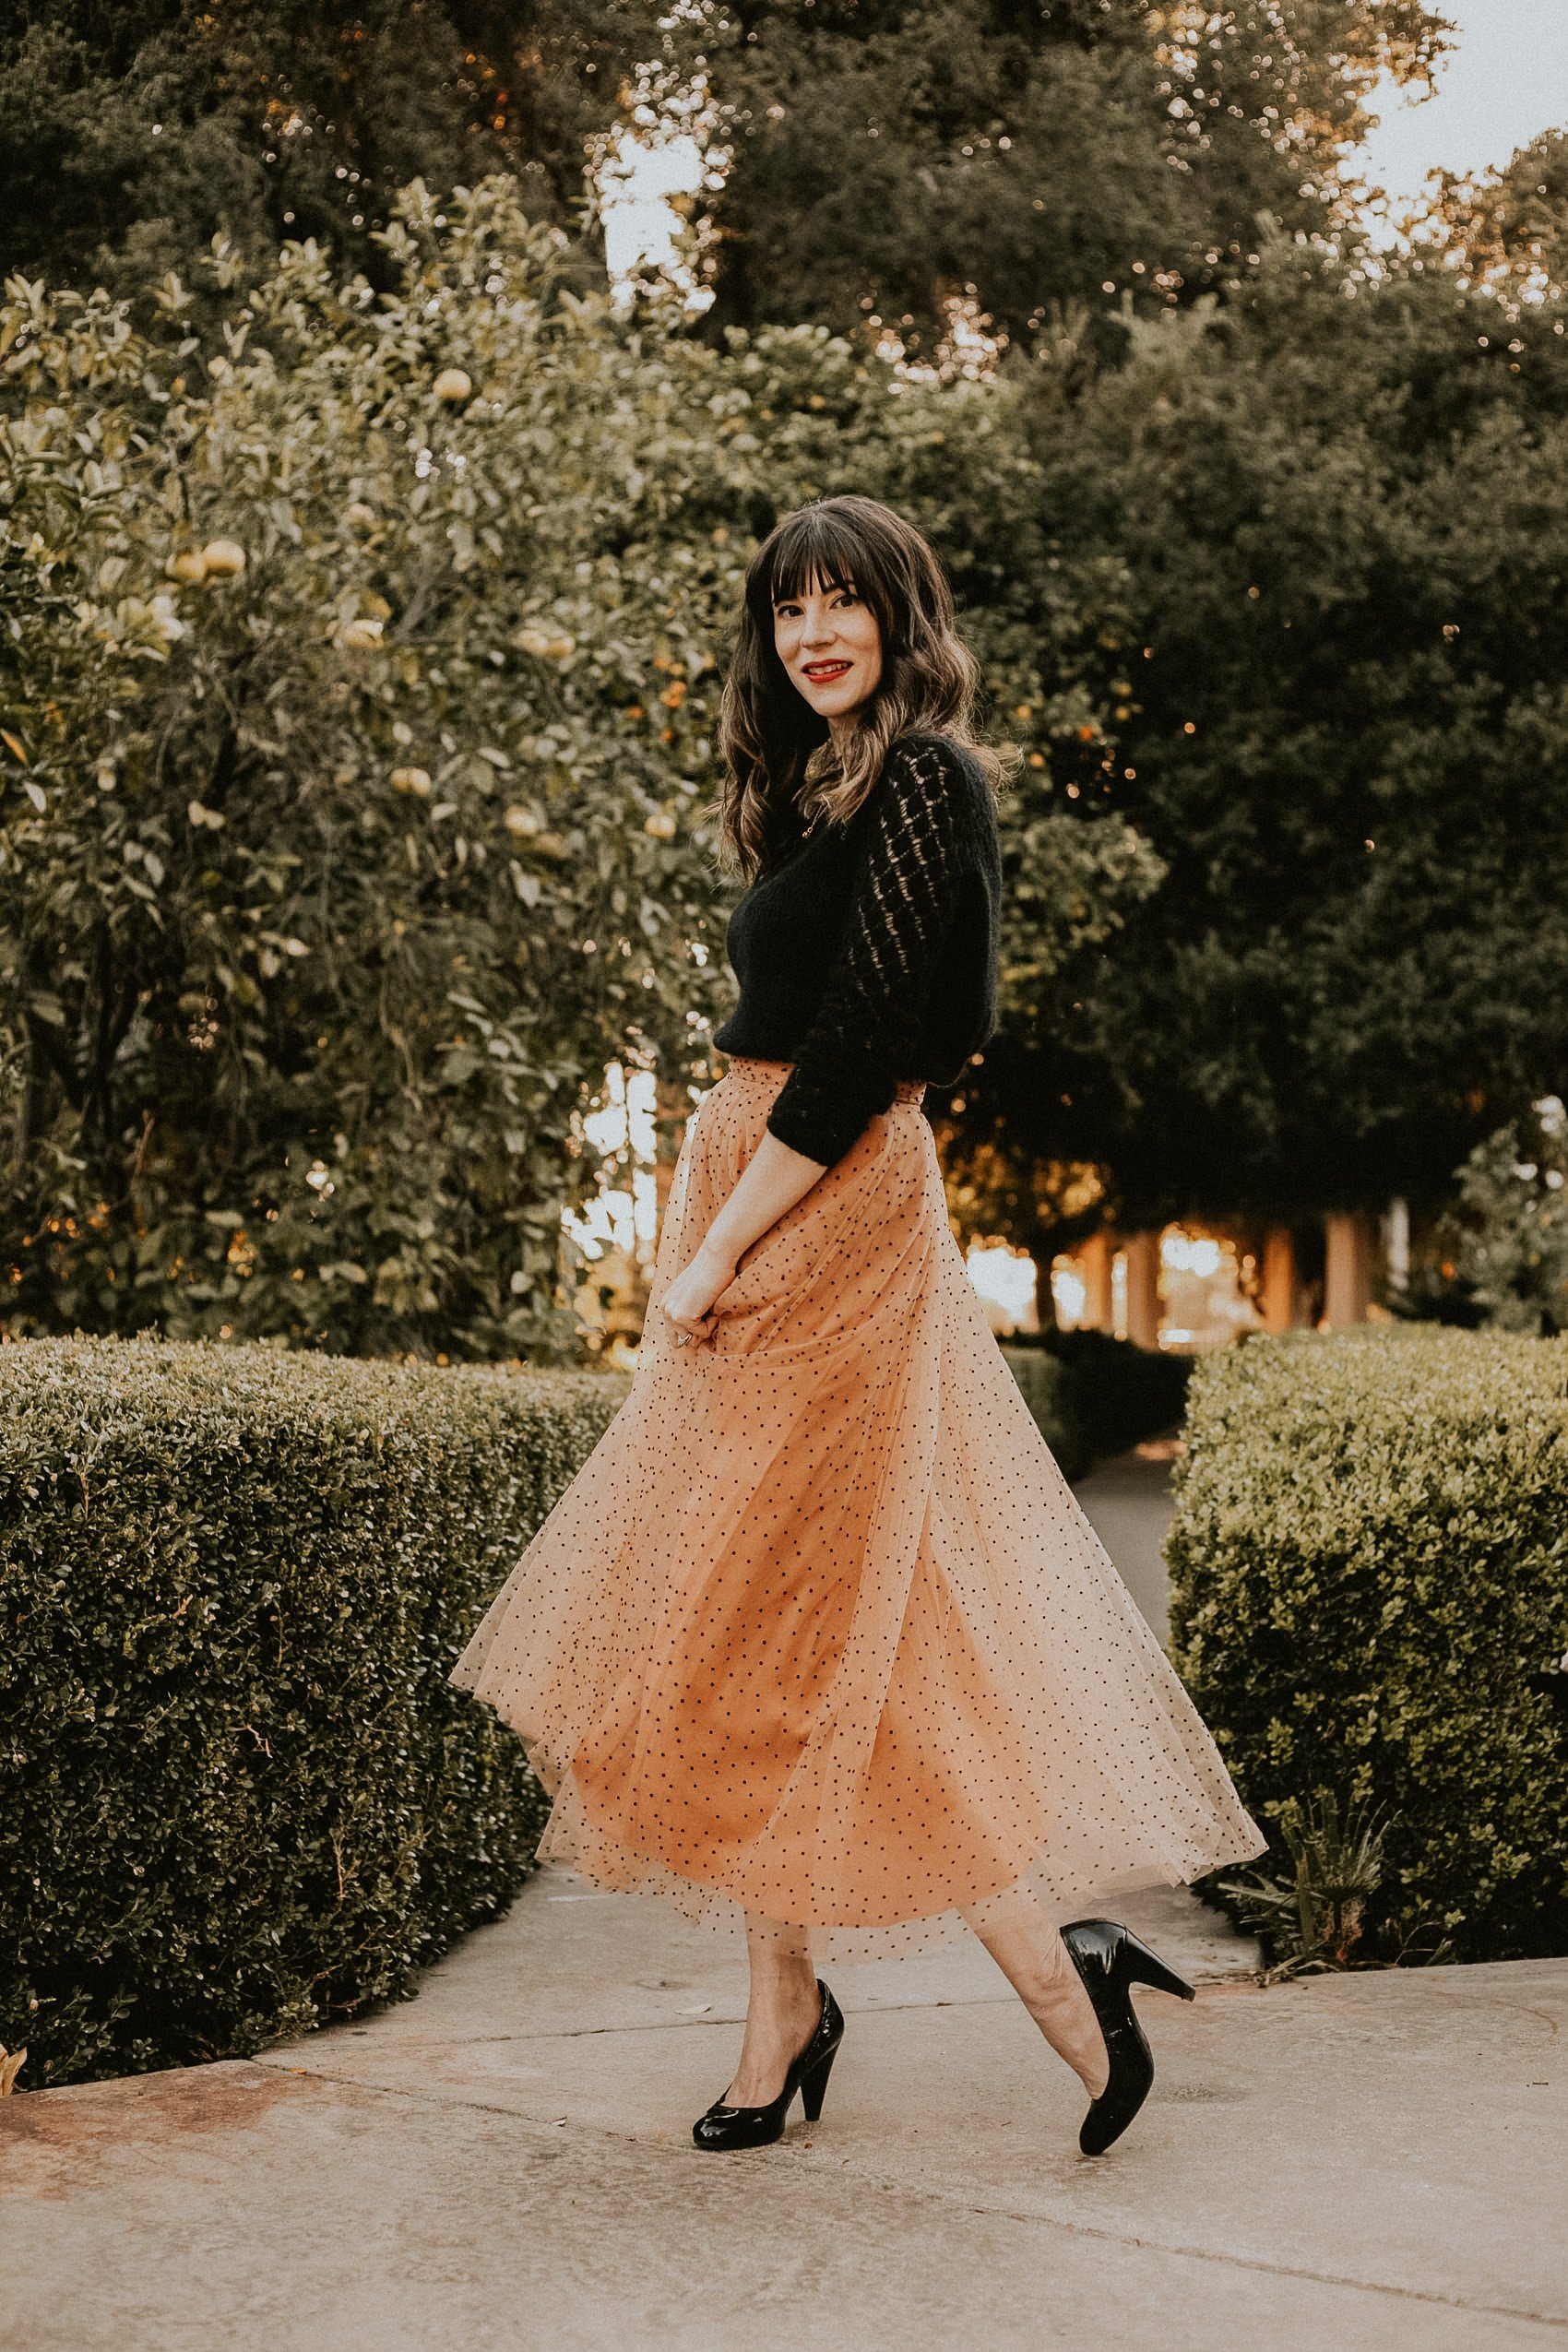 Los Angeles Fashion blogger in a park wearing an ankle length tulle skirt, black sweater, and pumps